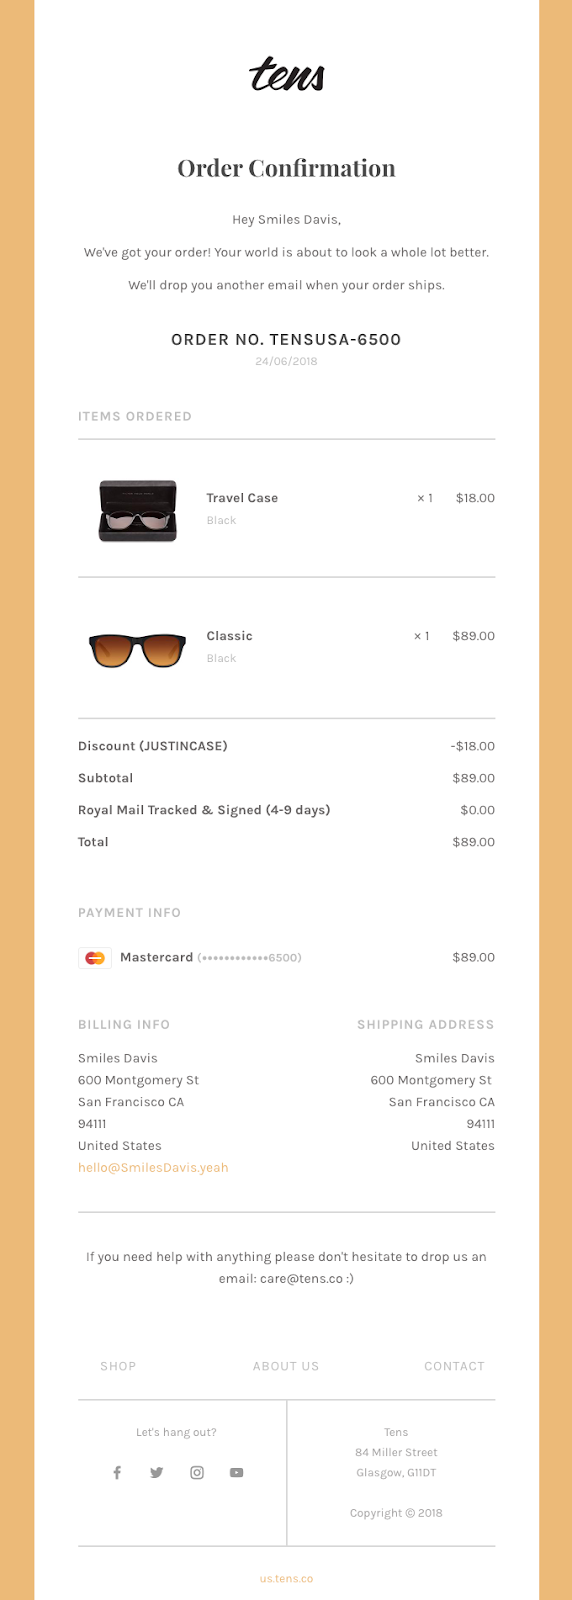 Tens e-commerce confirmation letter example